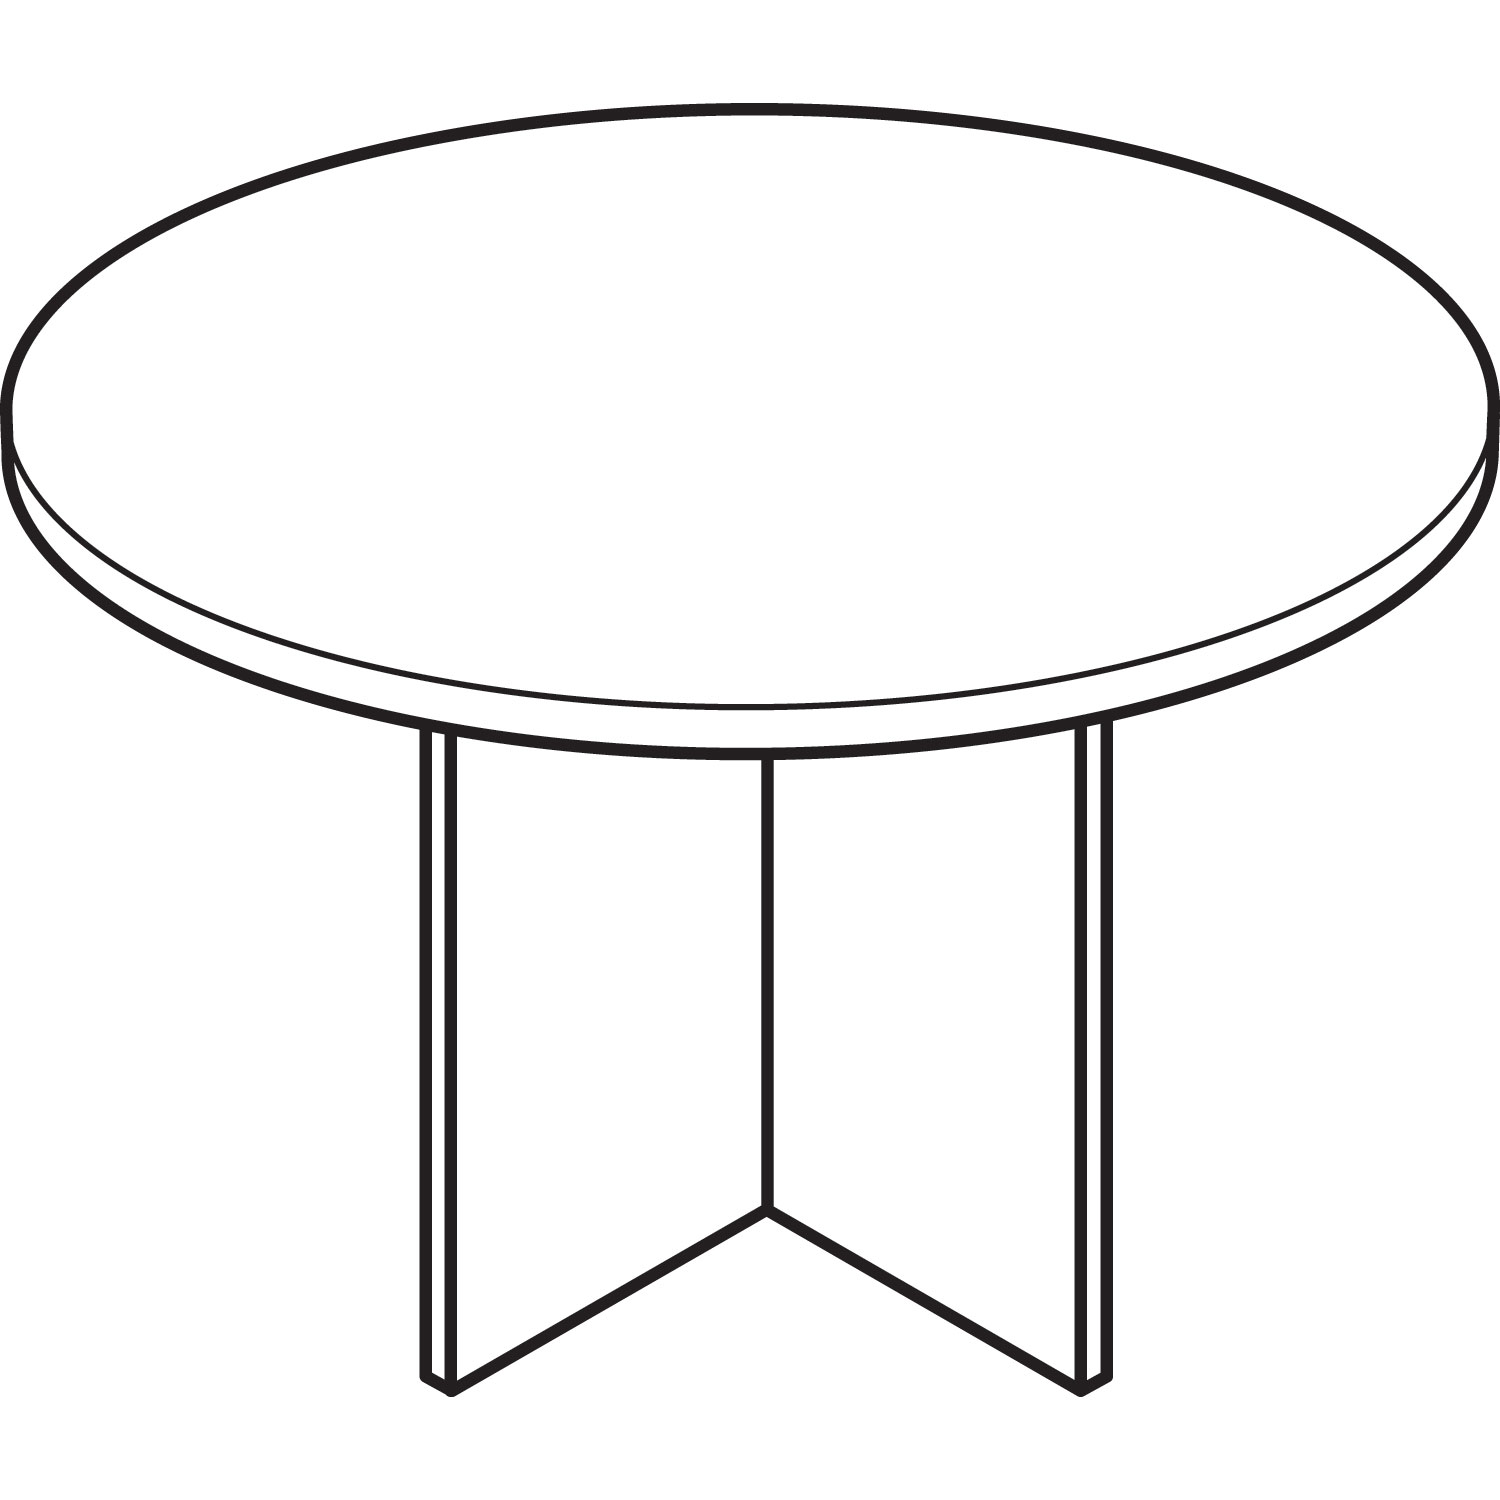 BL Laminate Series Round Conference Table By HON BSXBLCDNN - Hon round conference table